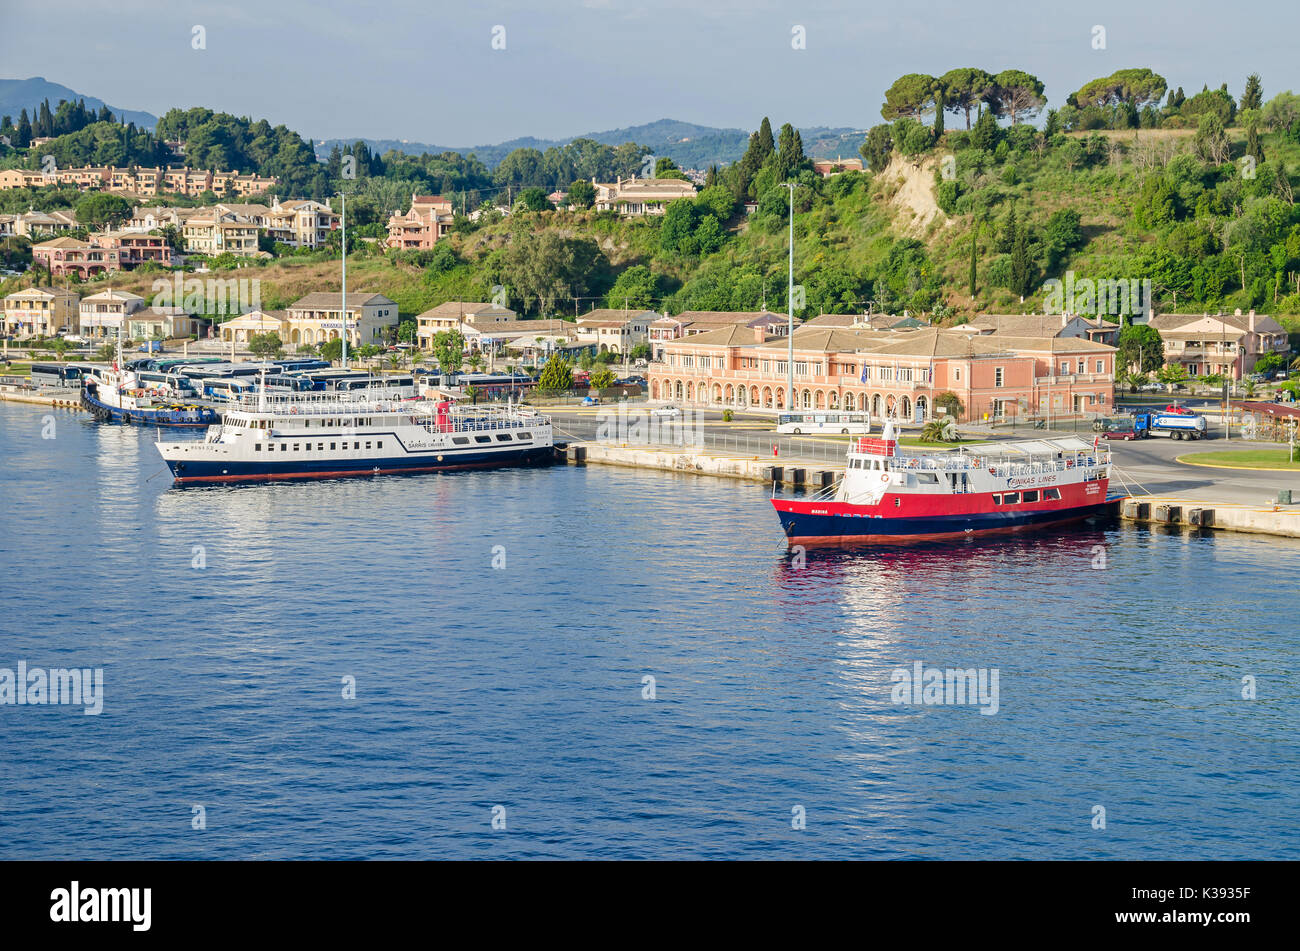 Corfu, Greece - June 7, 2017: Port of the Greek island Corfu, the second largest of the Ionian Islands, with passanger terminal and ferry boats - Stock Image